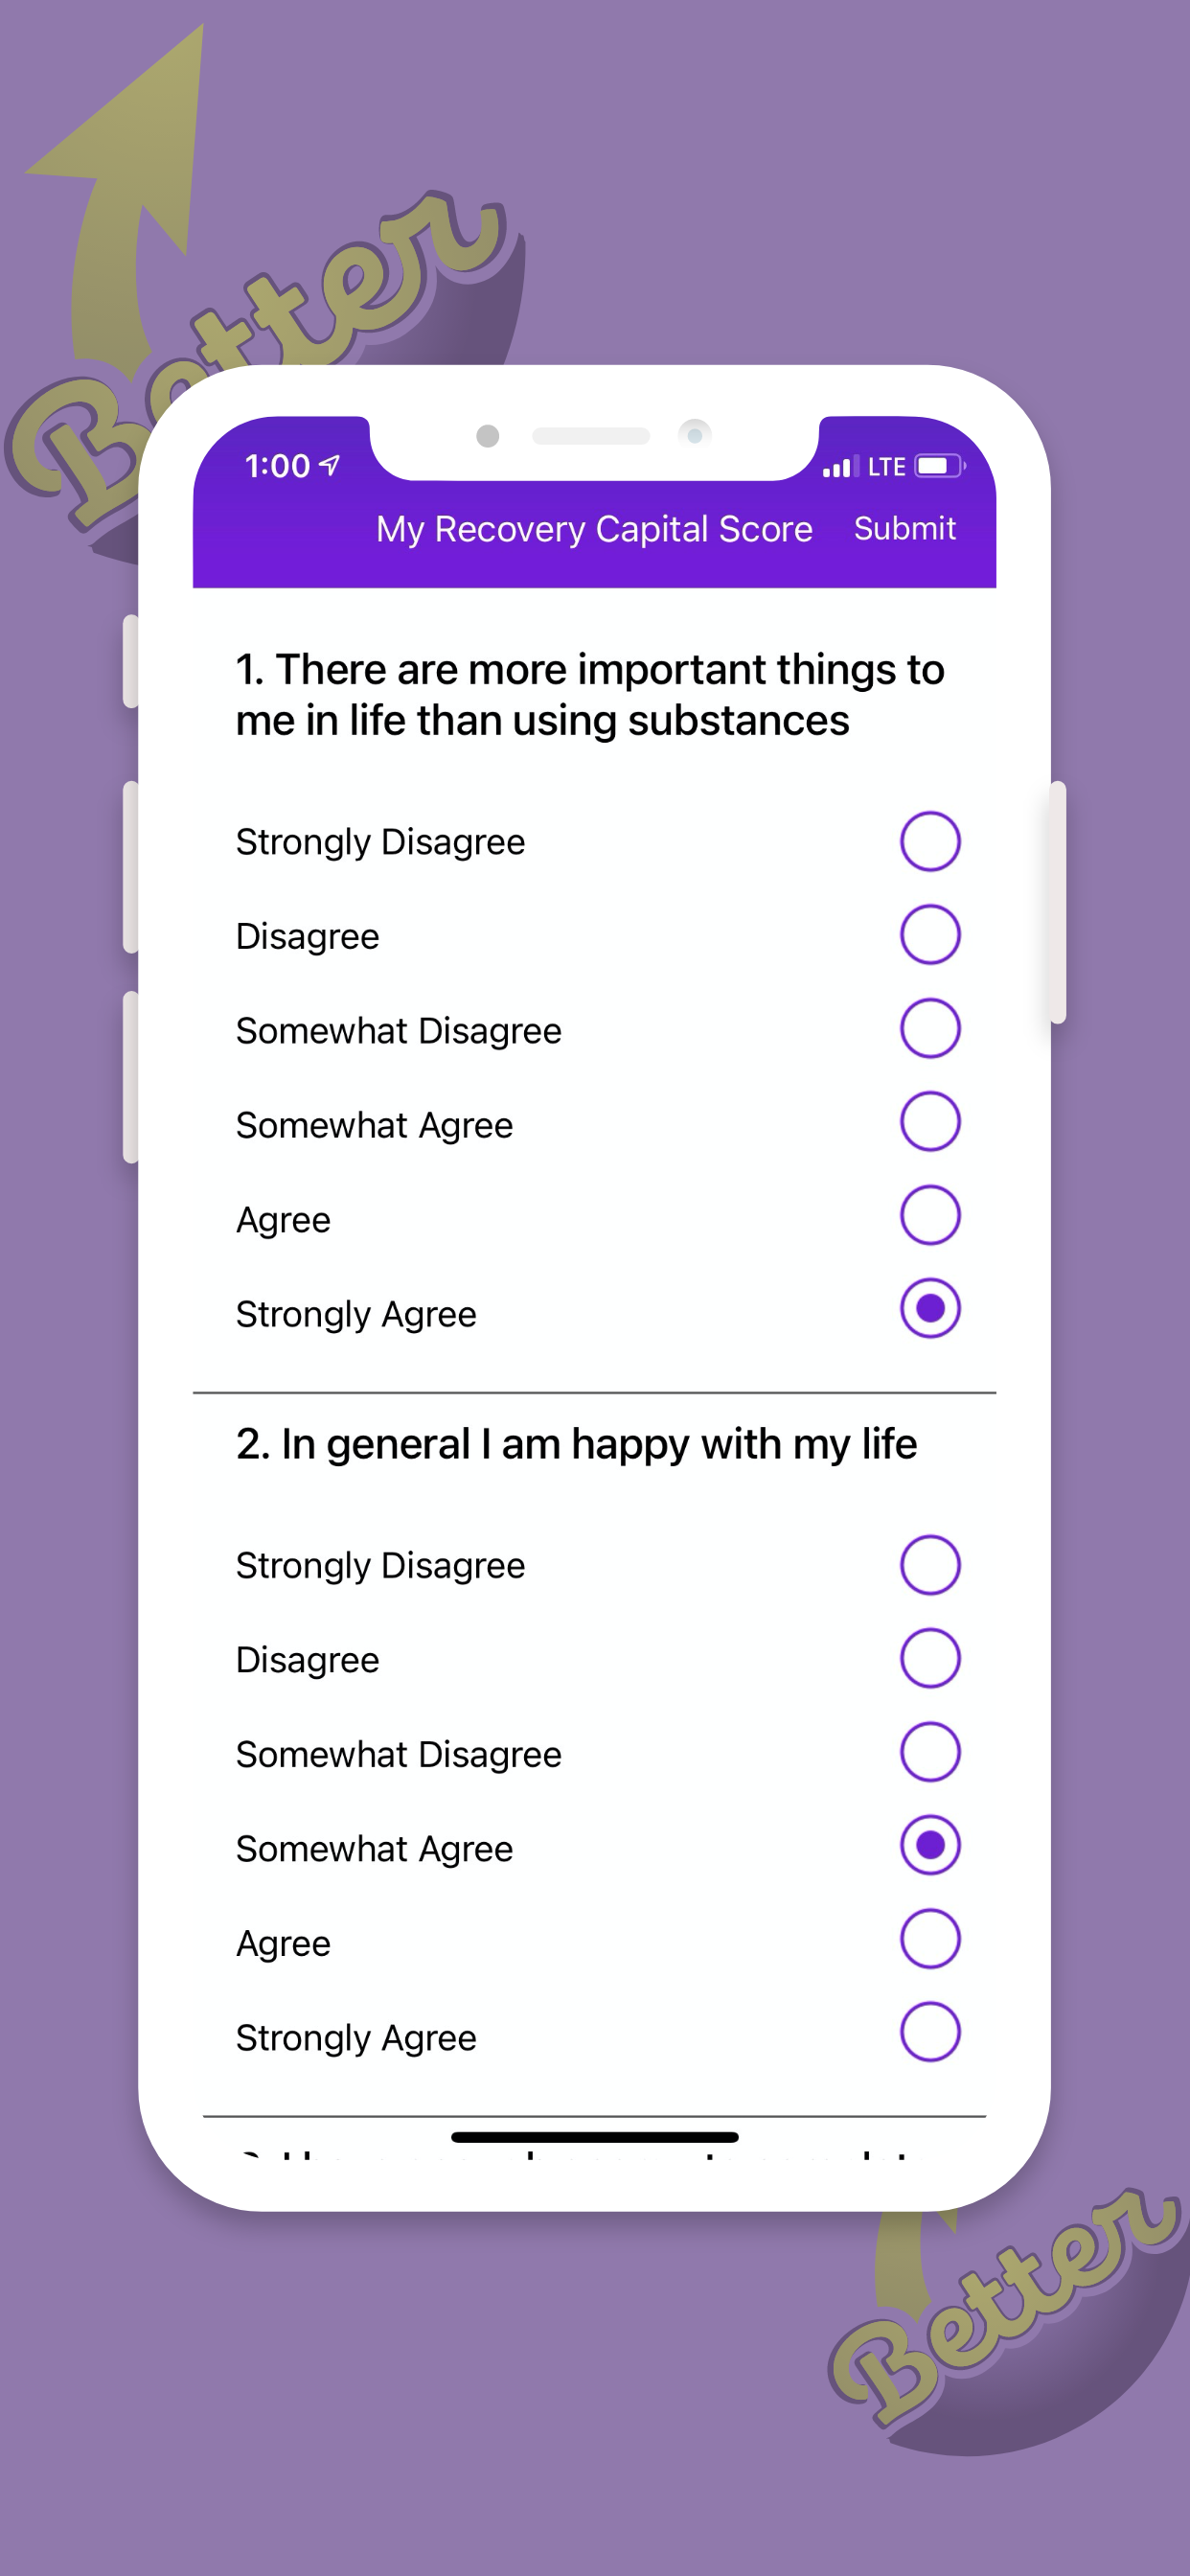 overdose prevention app, 12 step recovery app, stop overdoses, recovery app